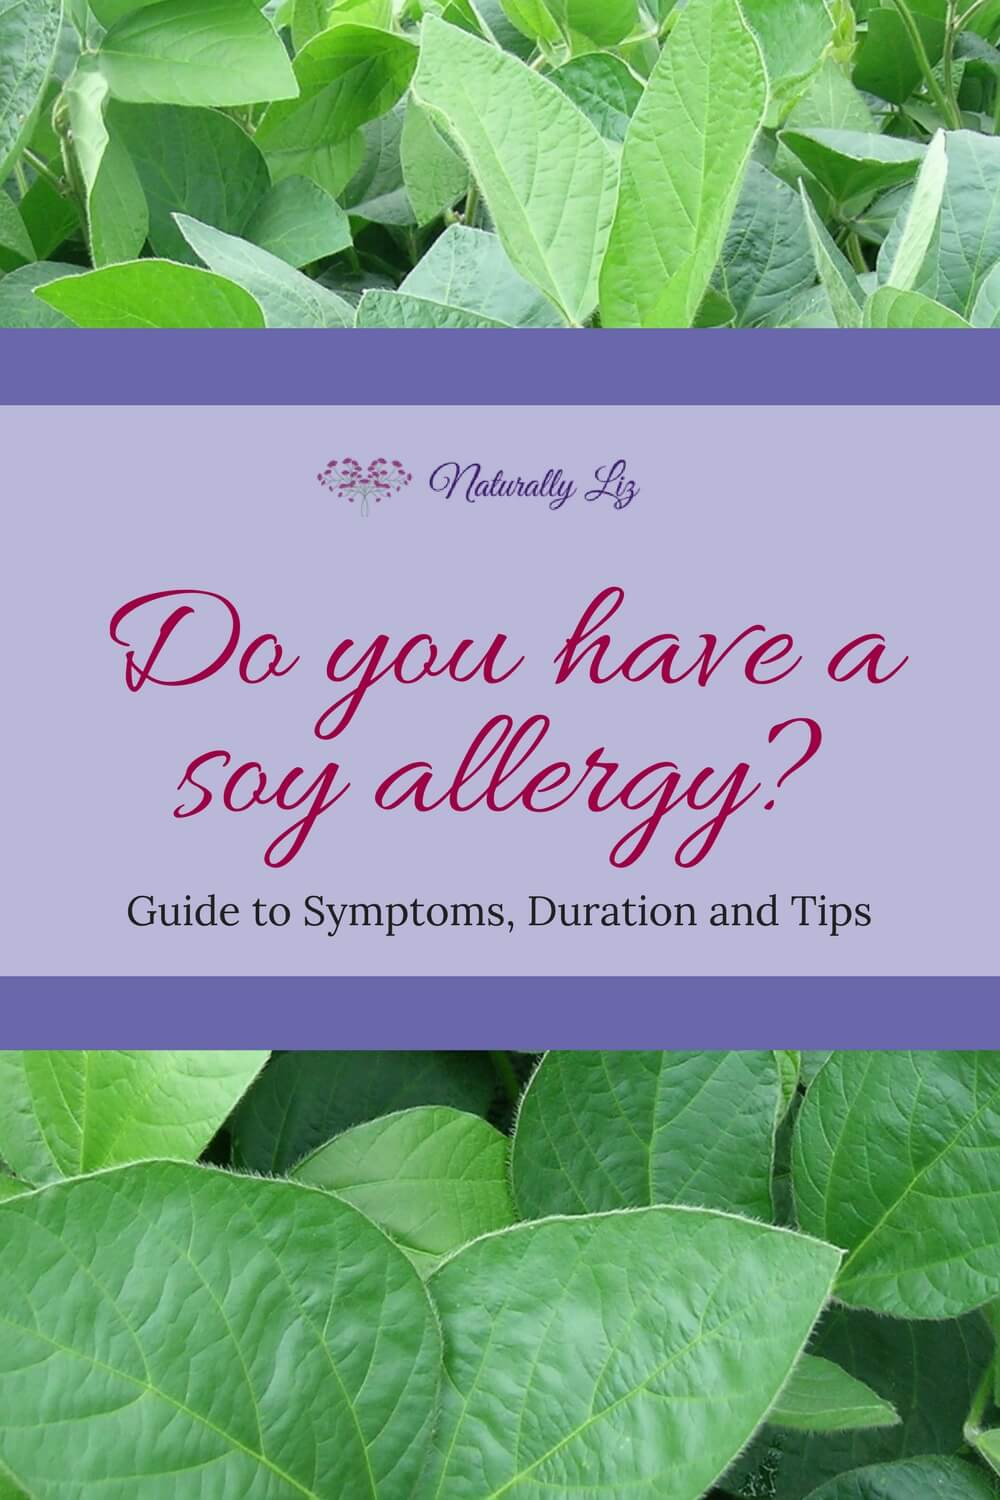 Allergic reaction to soy guide~naturallyliz.com